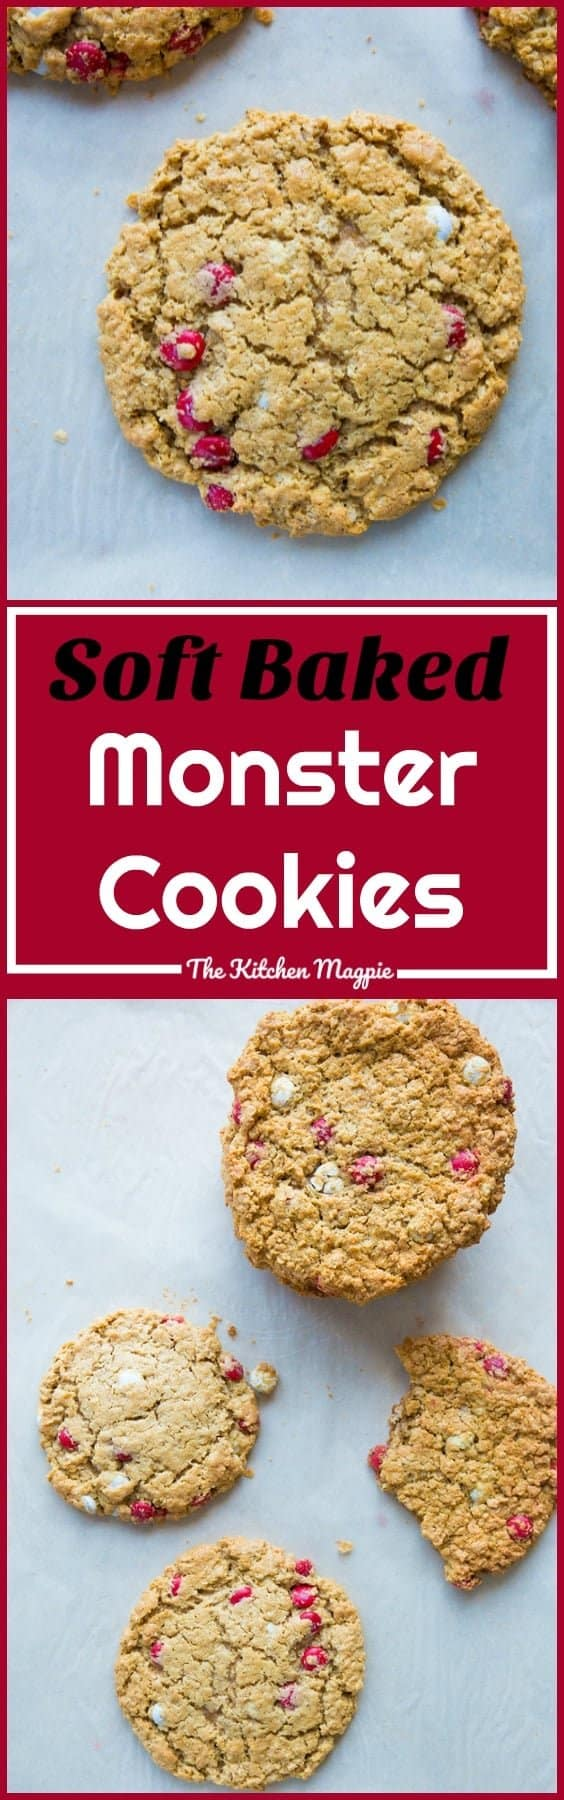 The BEST Soft Baked Monster Cookies - Gluten Free! from @kitchenmagpie